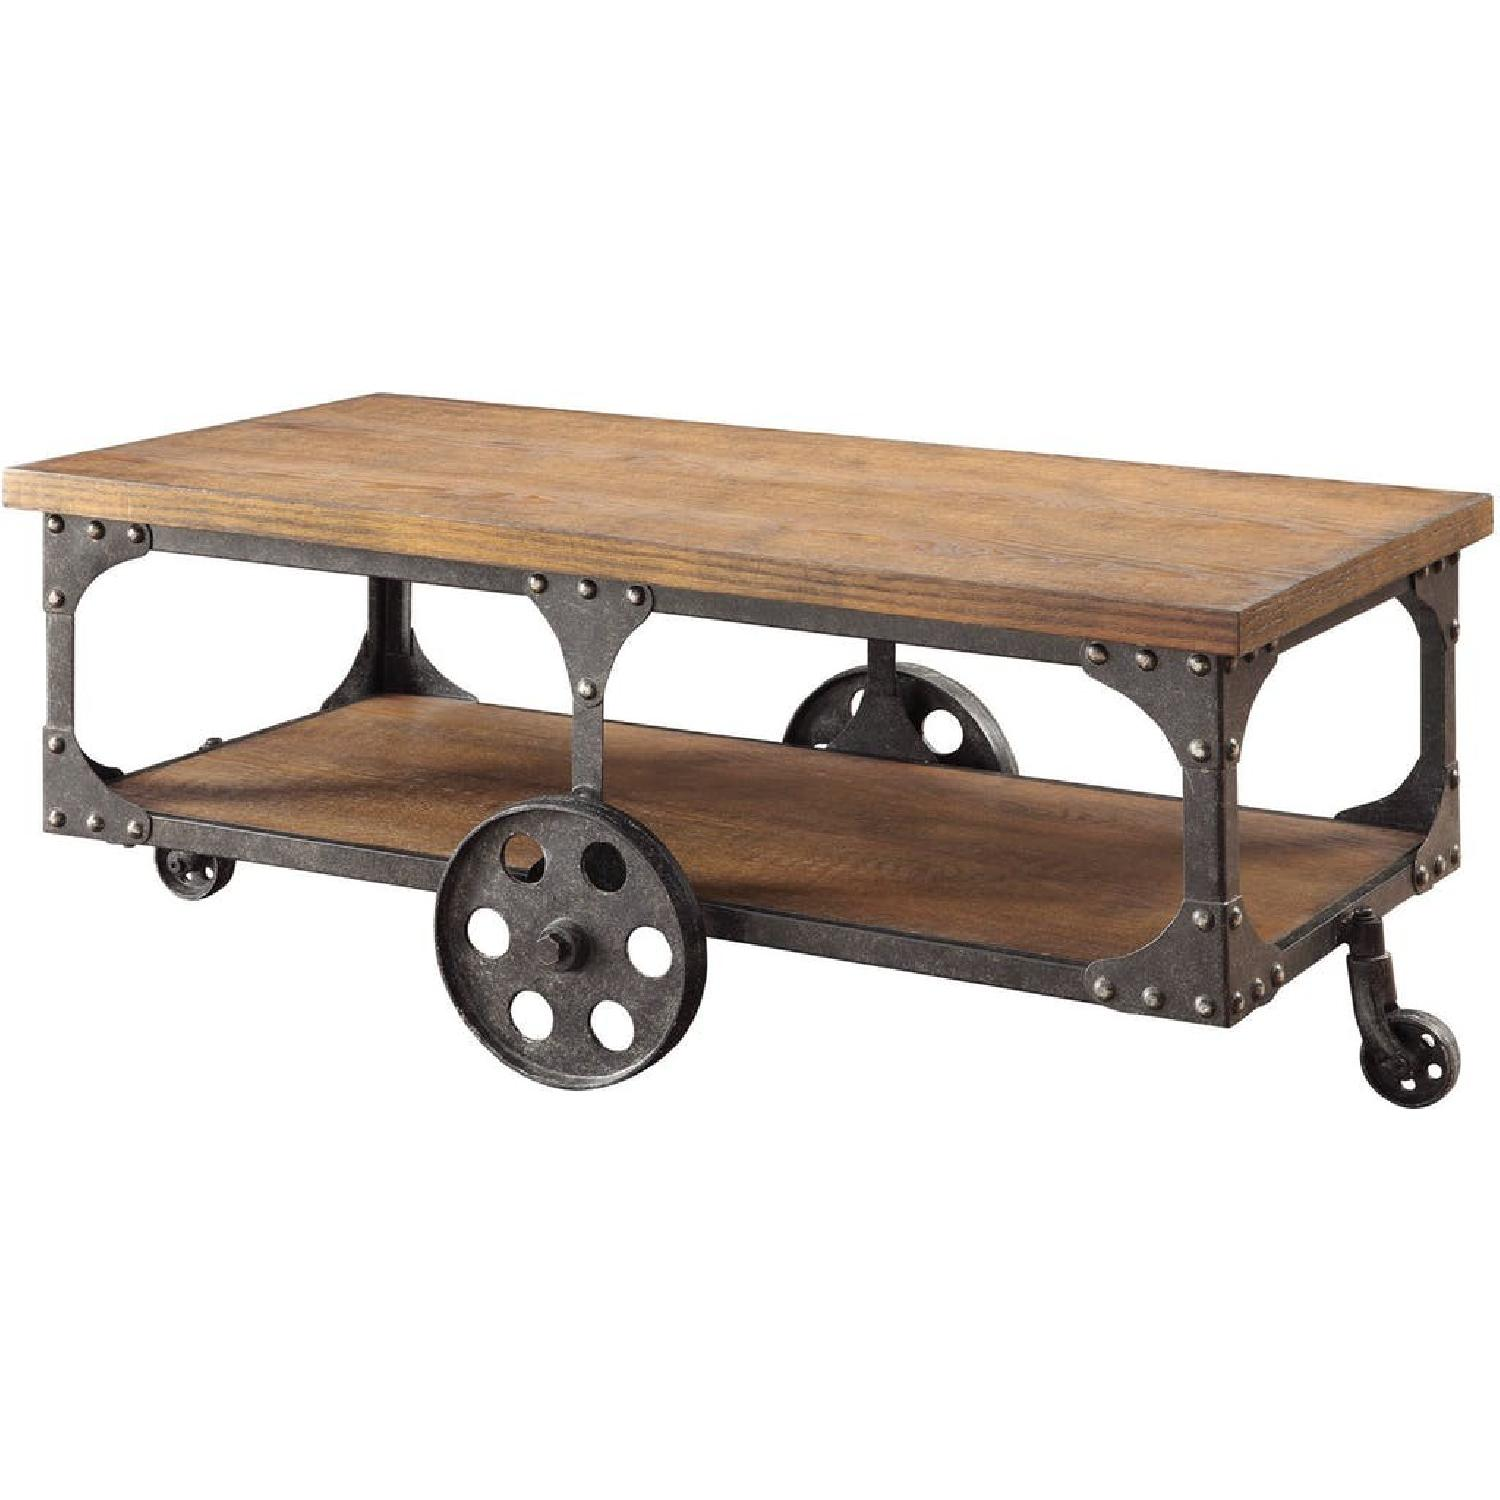 Rustic Brown Coffee Table w/ Metal Wheels - image-2